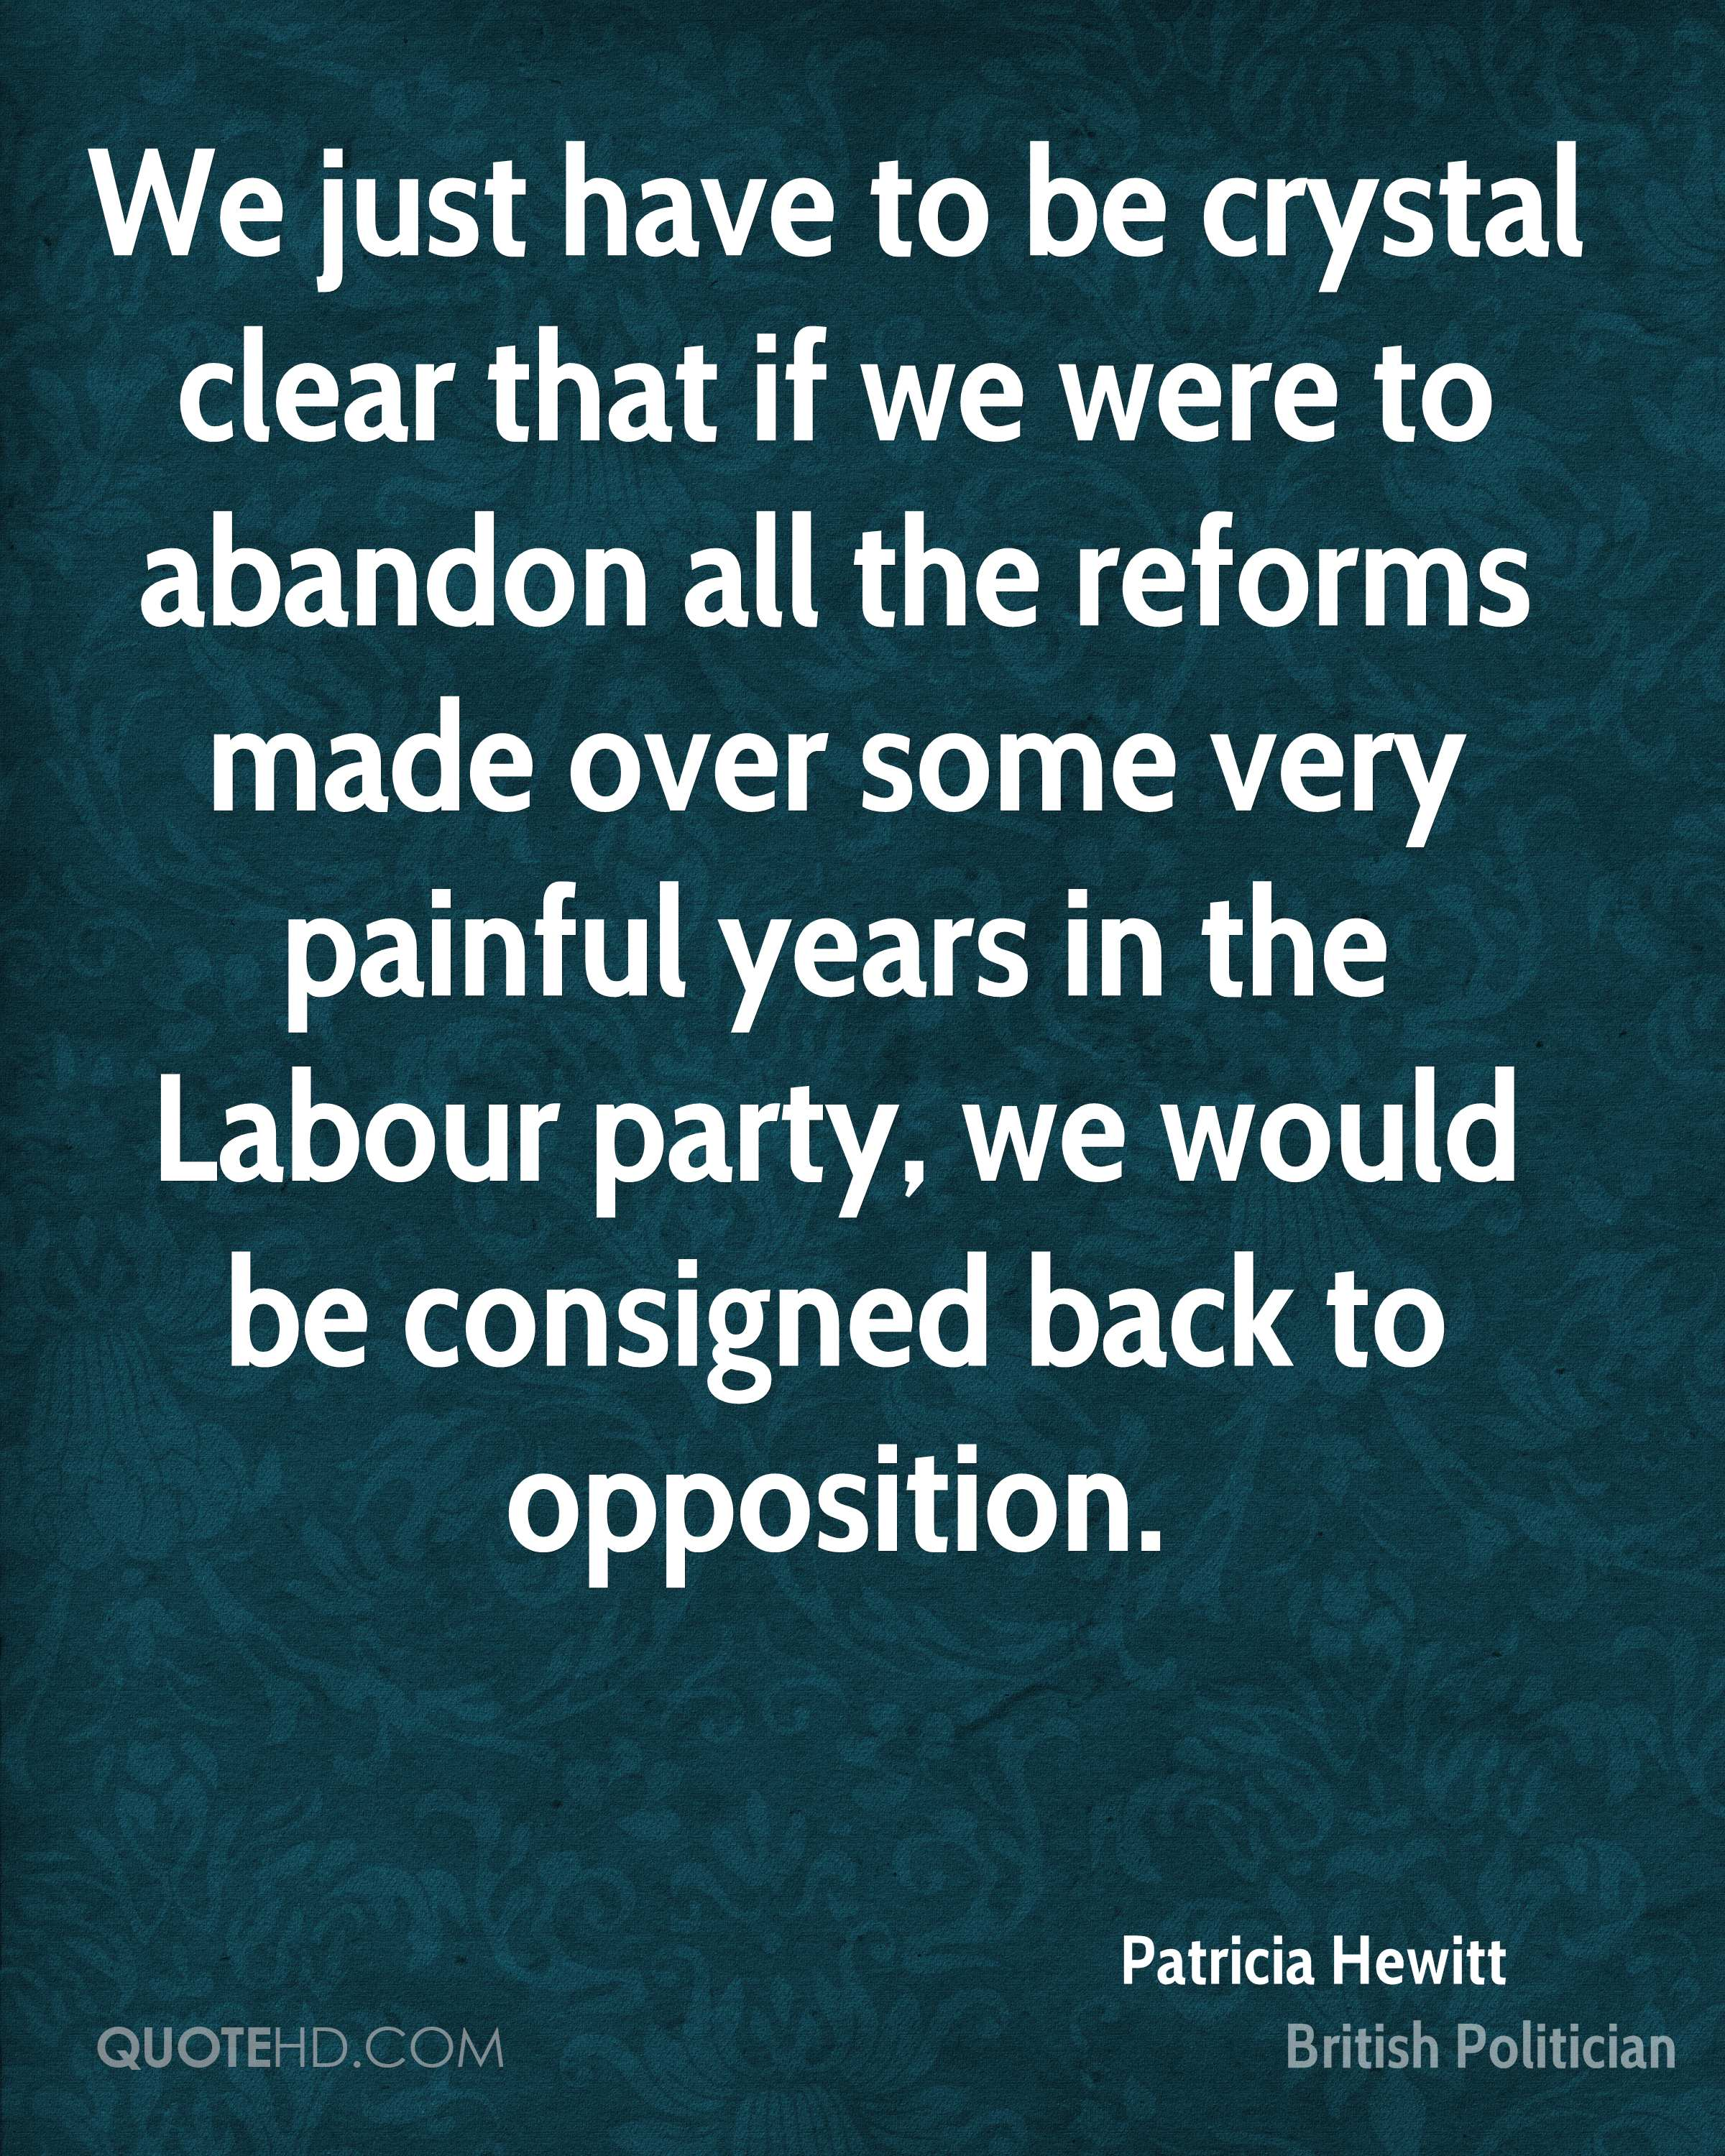 We just have to be crystal clear that if we were to abandon all the reforms made over some very painful years in the Labour party, we would be consigned back to opposition.